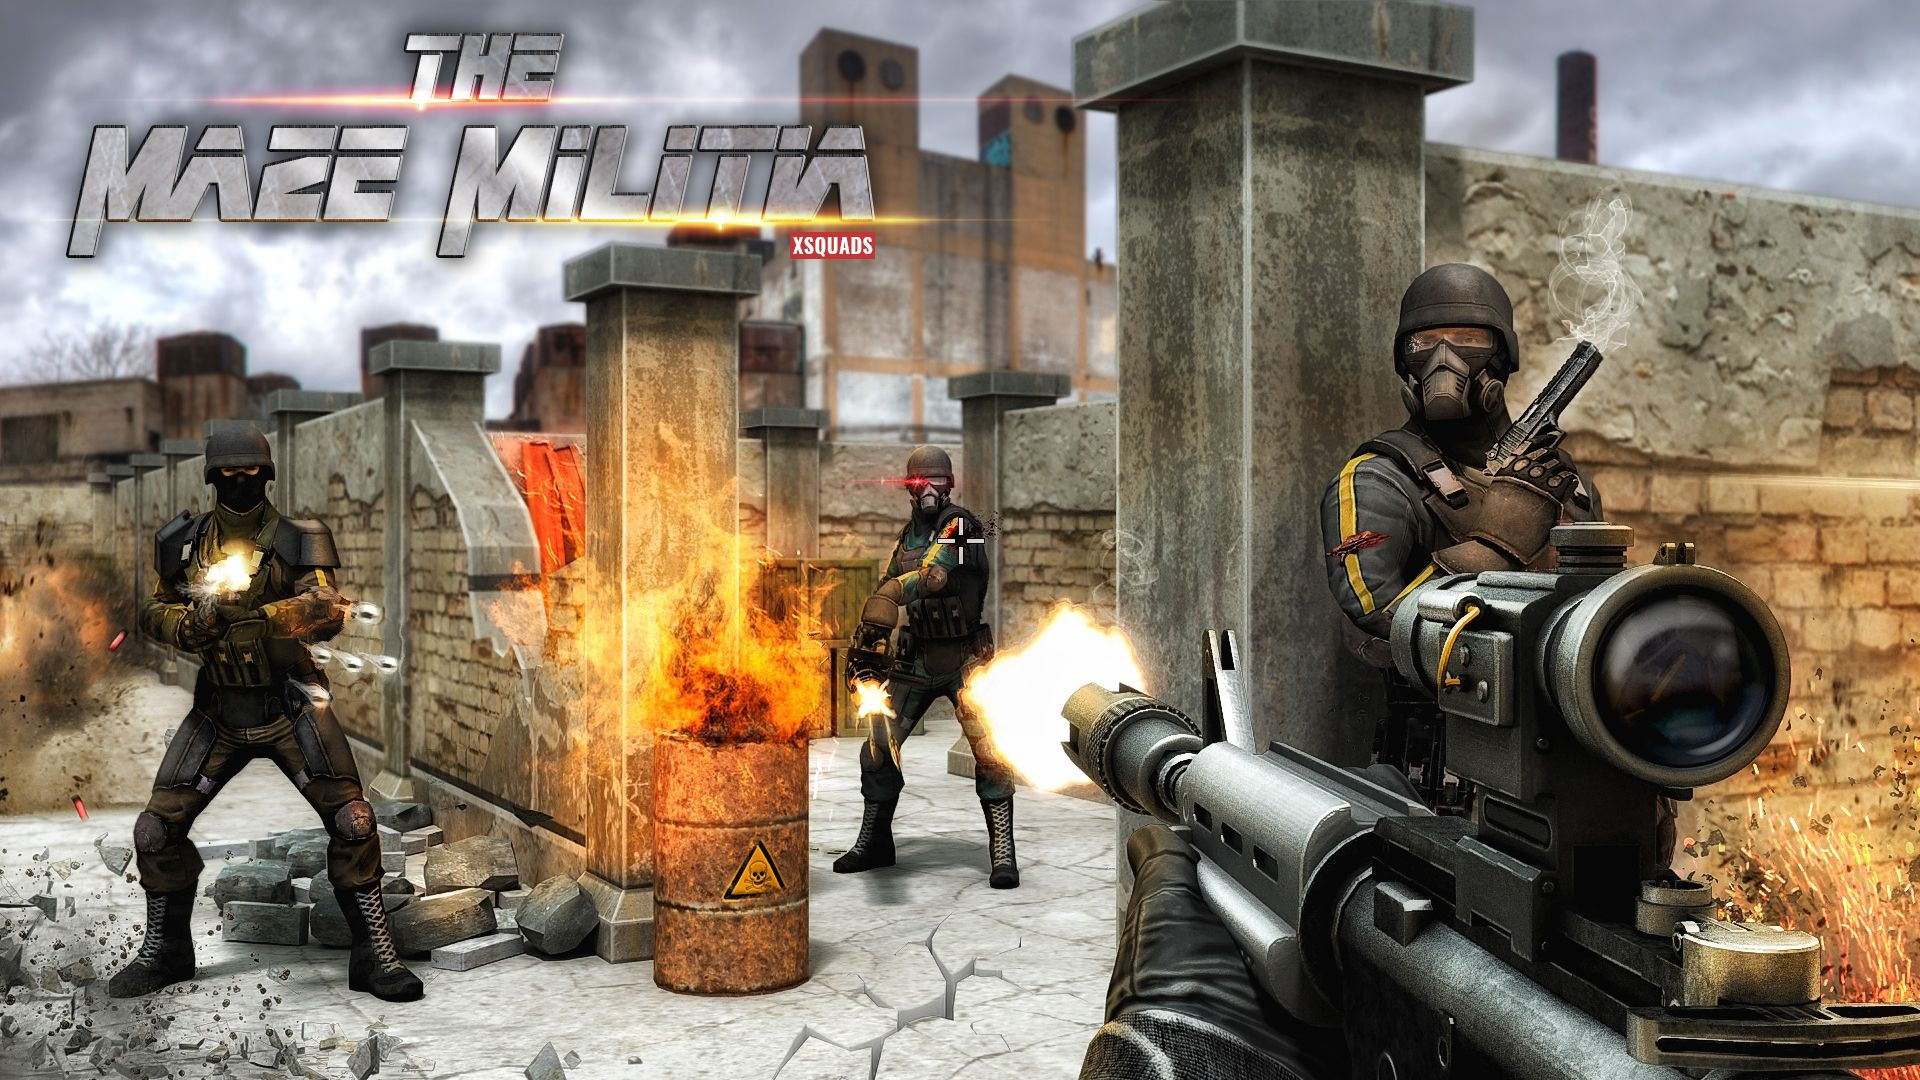 Experience Dynamic Game Play Of Fps Game Fps Games Action Games Shooting Games